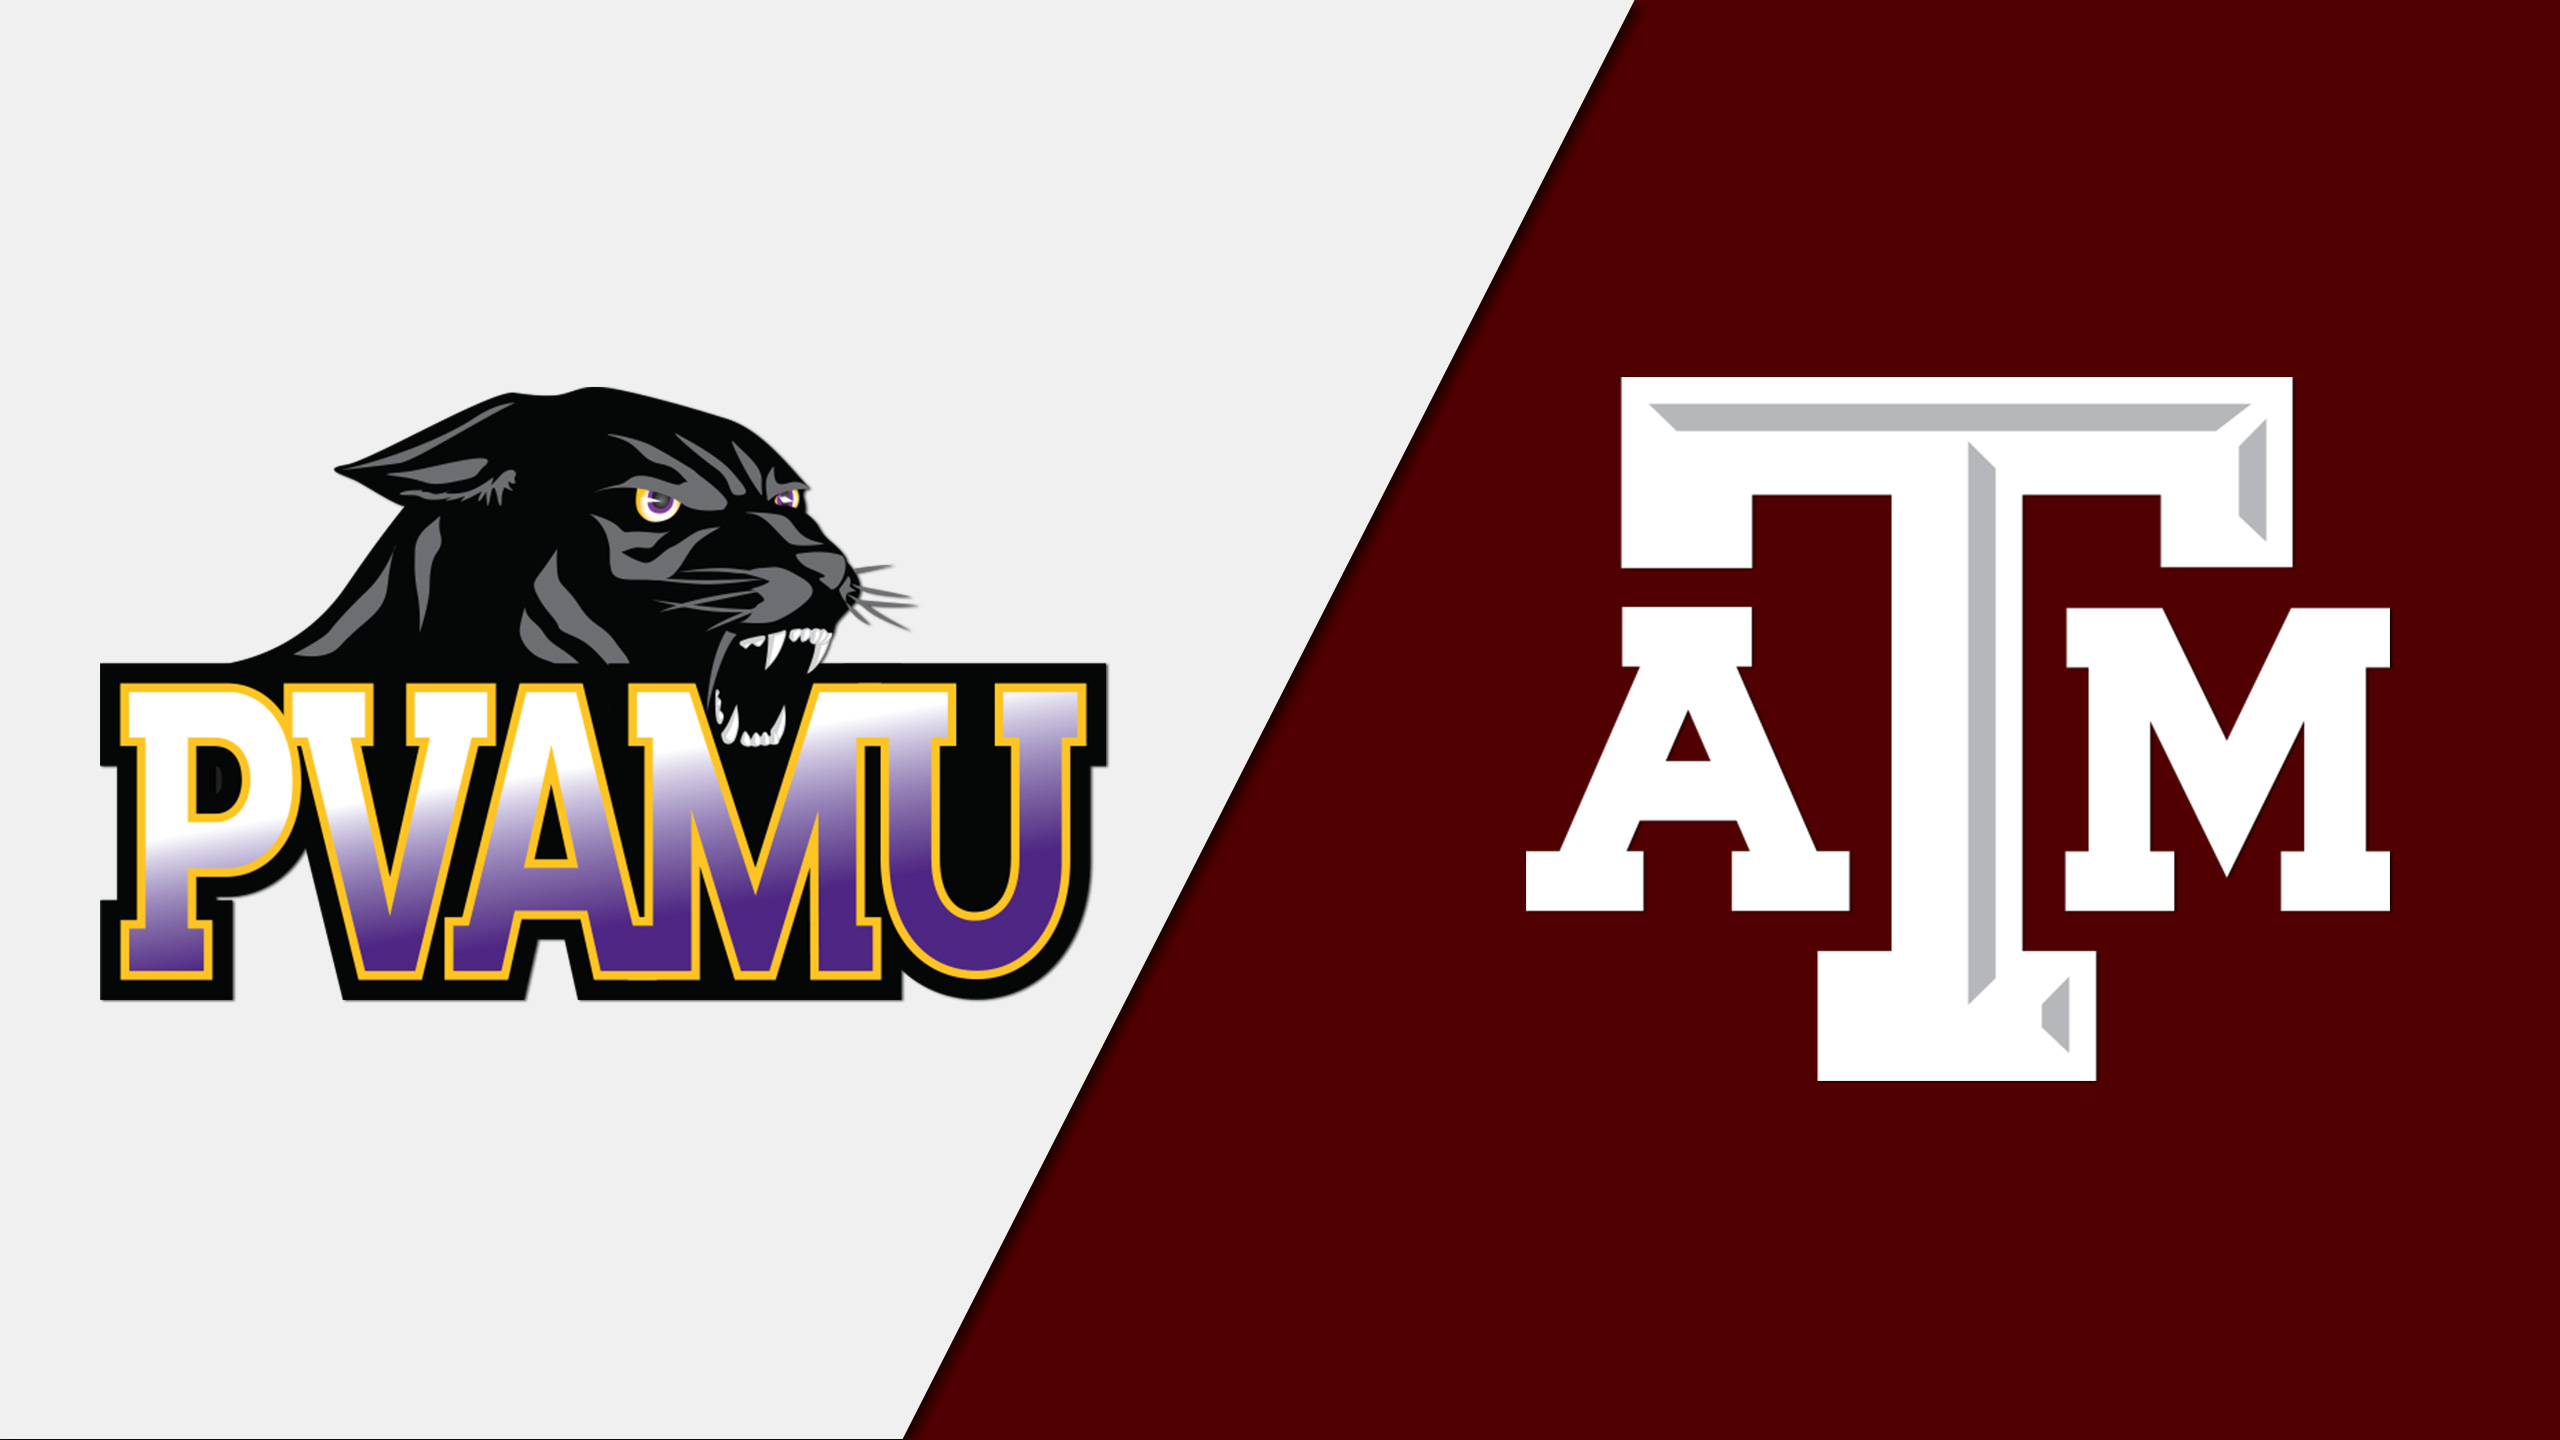 Prairie View A&M vs. Texas A&M (Baseball)